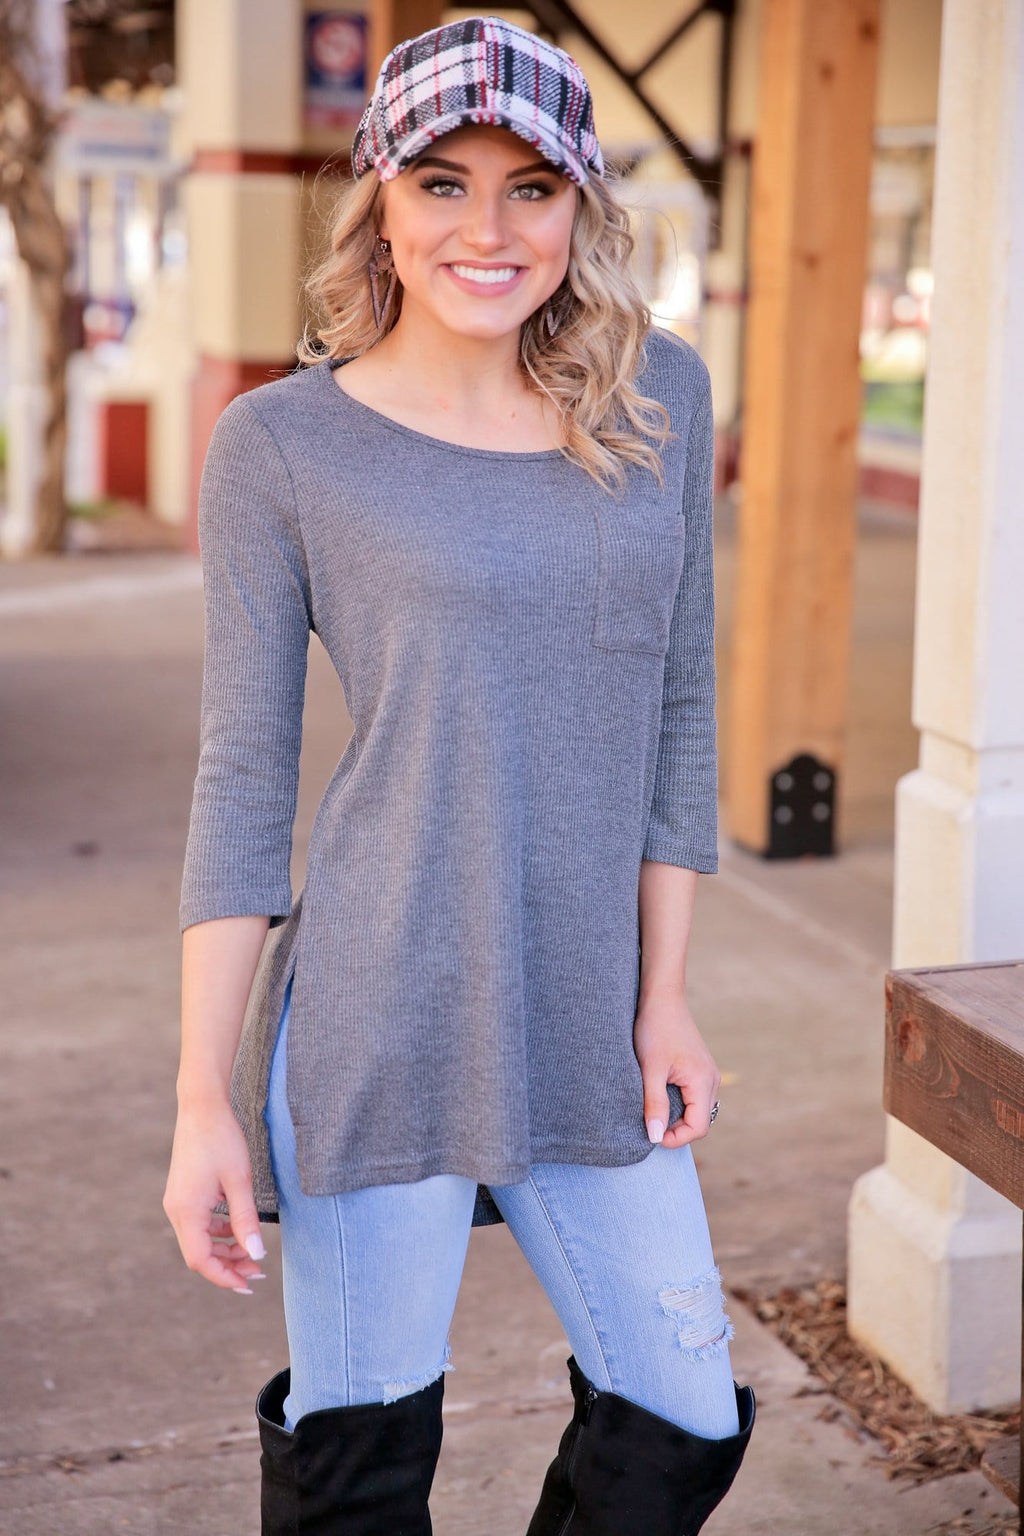 DOING WHAT I WANT LONG SLEEVE WAFFLE KNIT TUNIC-CHARCOAL - Infinity Raine